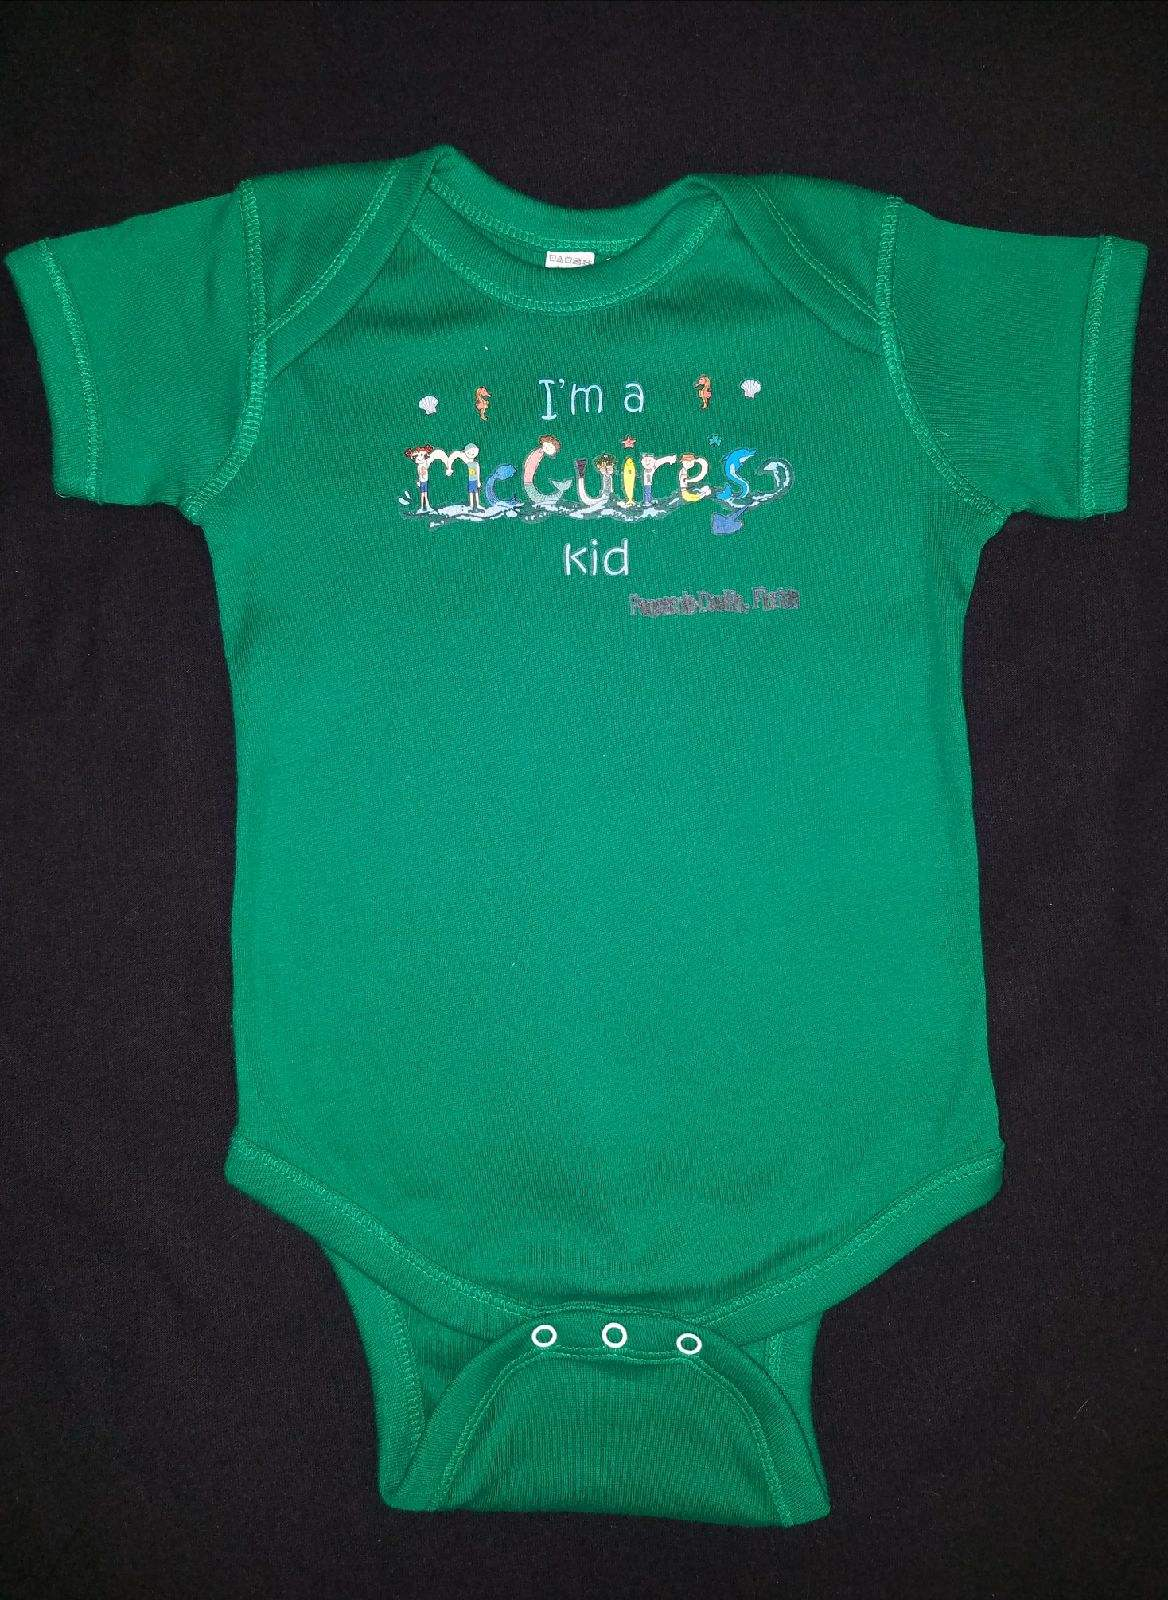 I am a McGuires Kid Onesie